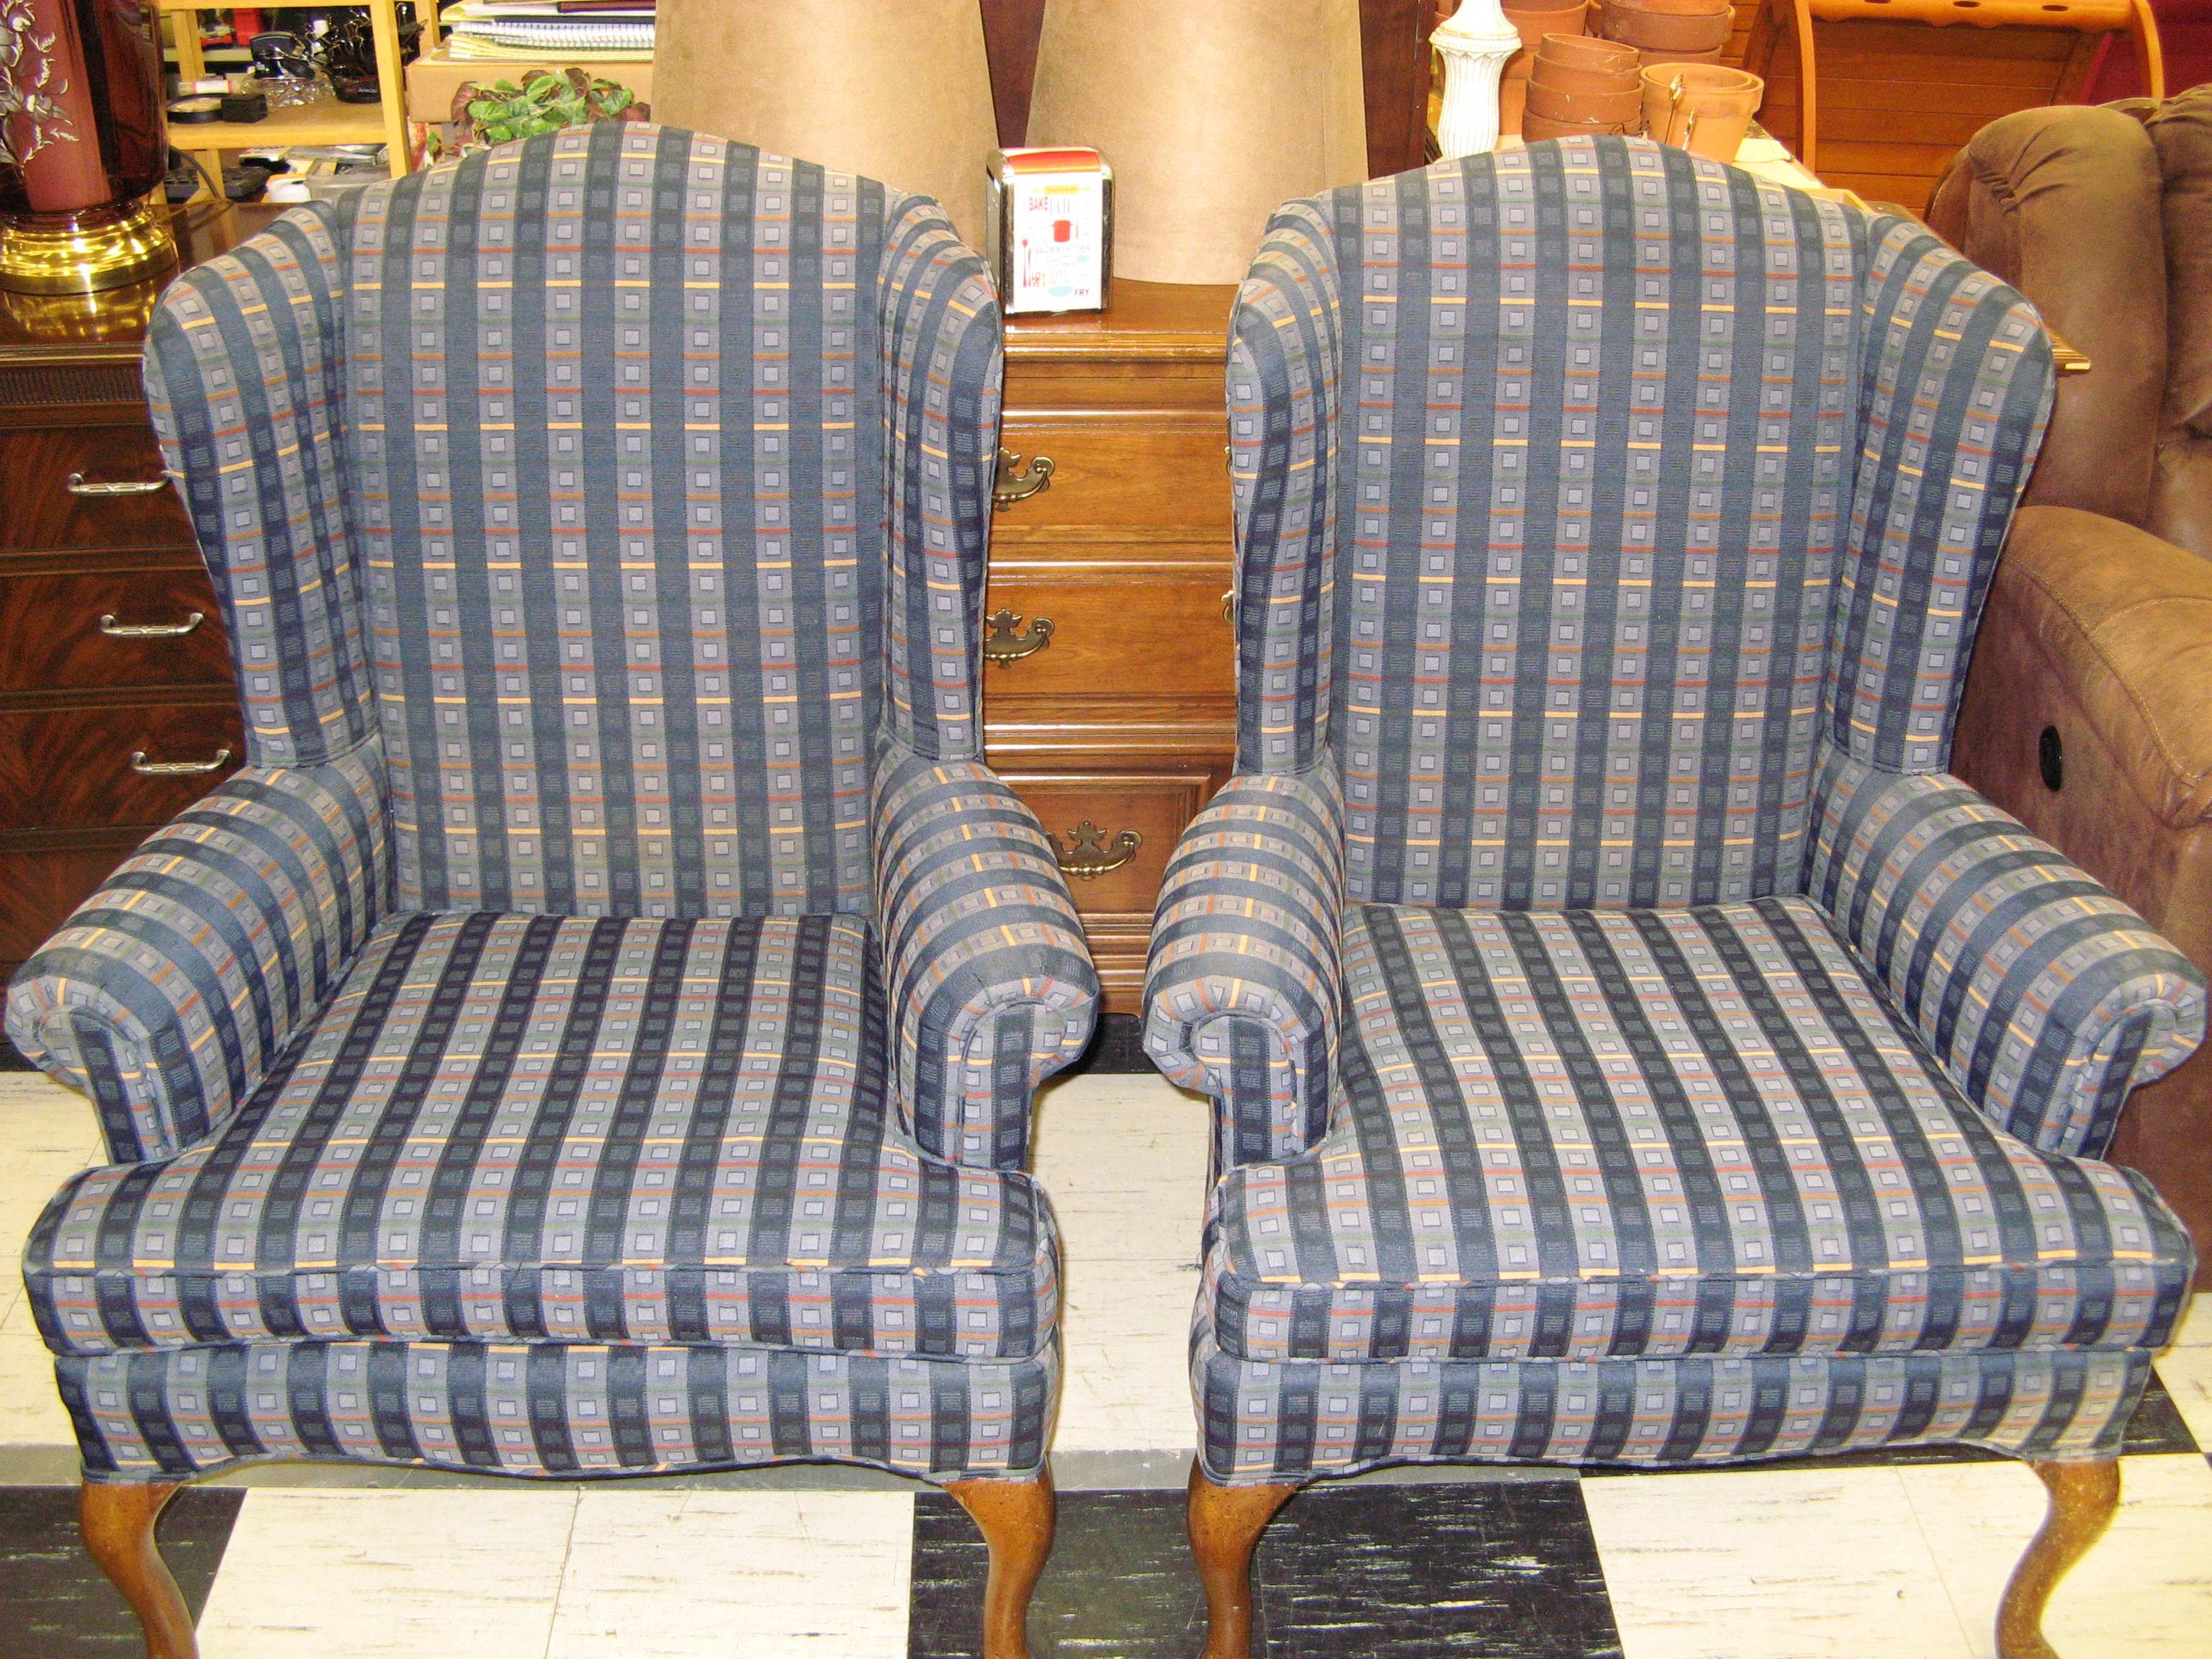 Wing Back Chair with Stripe & Plaid Pattern Upholstery, Modern